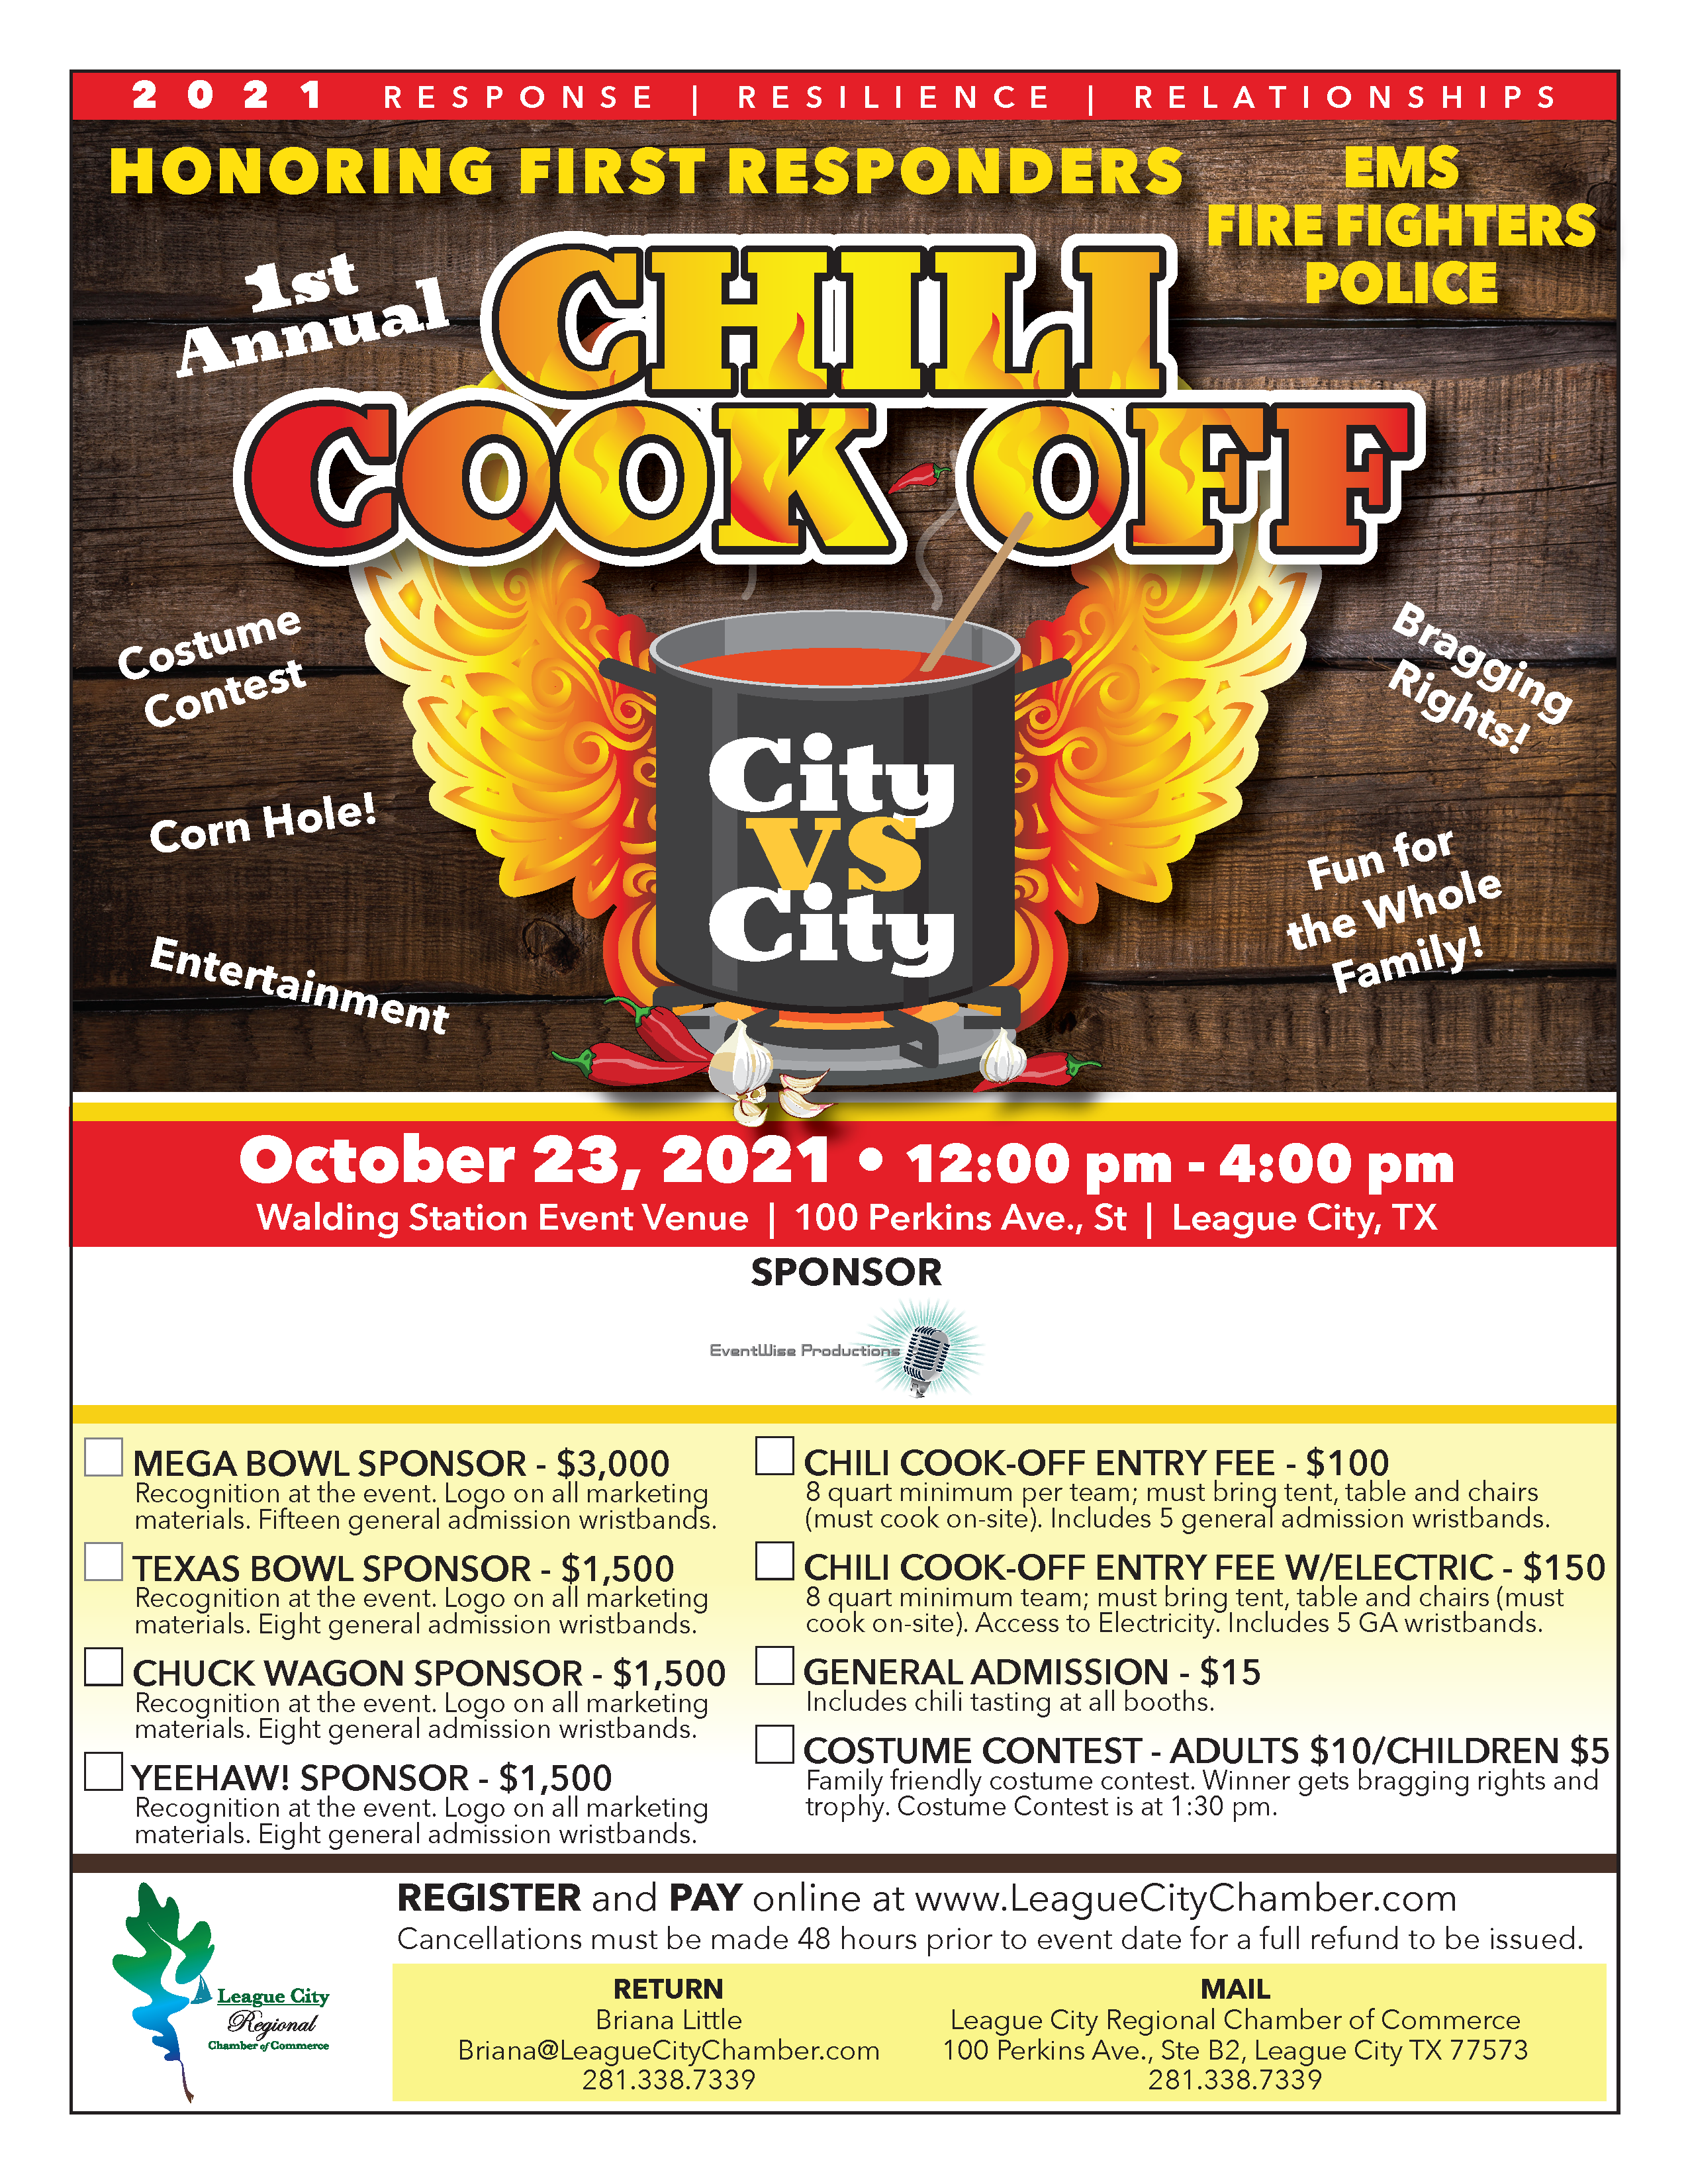 Image for PRESS RELEASE: League City Regional Chamber of Commerce to host first ever Chili Cook Off